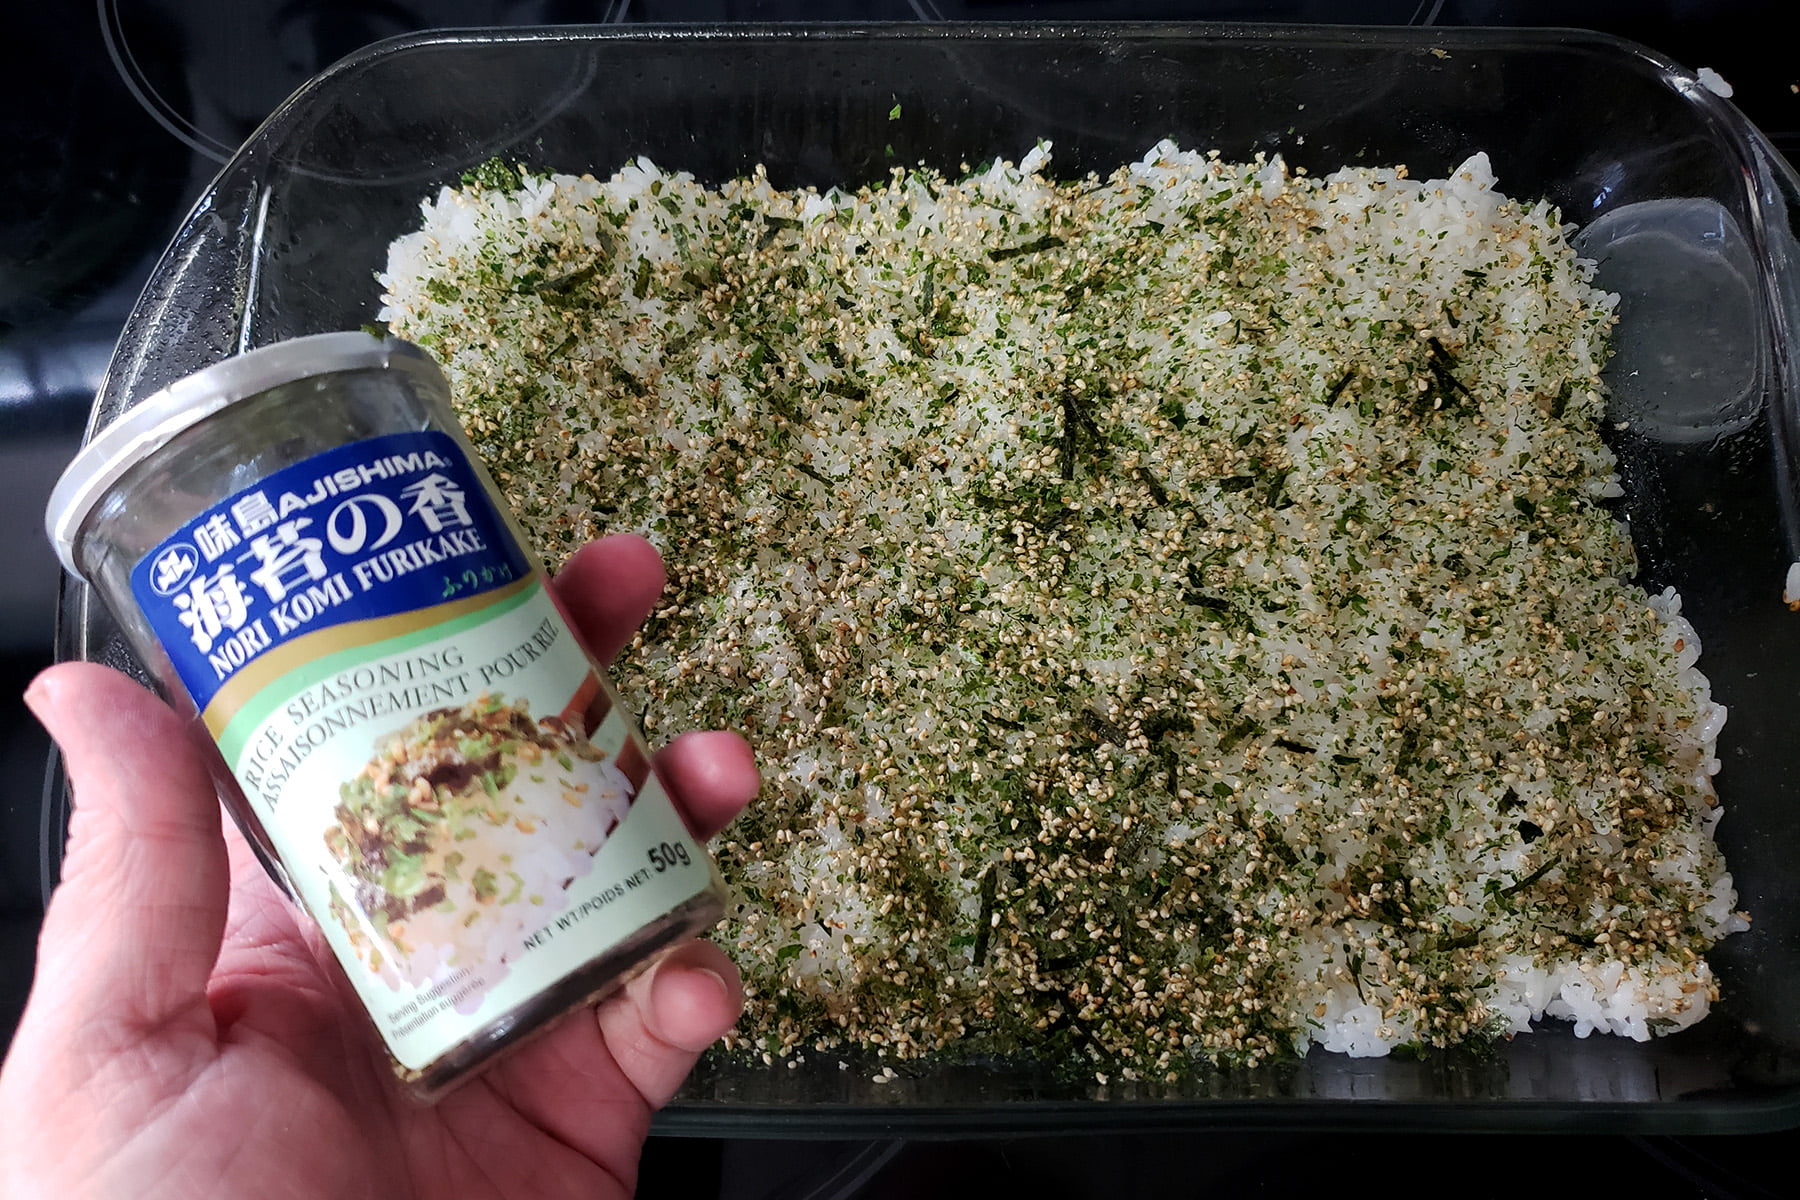 A hand holds a canister of furikake. The casserole dish with sushi rice in it is visible in the background, and has been generously sprinkled with the furikake.